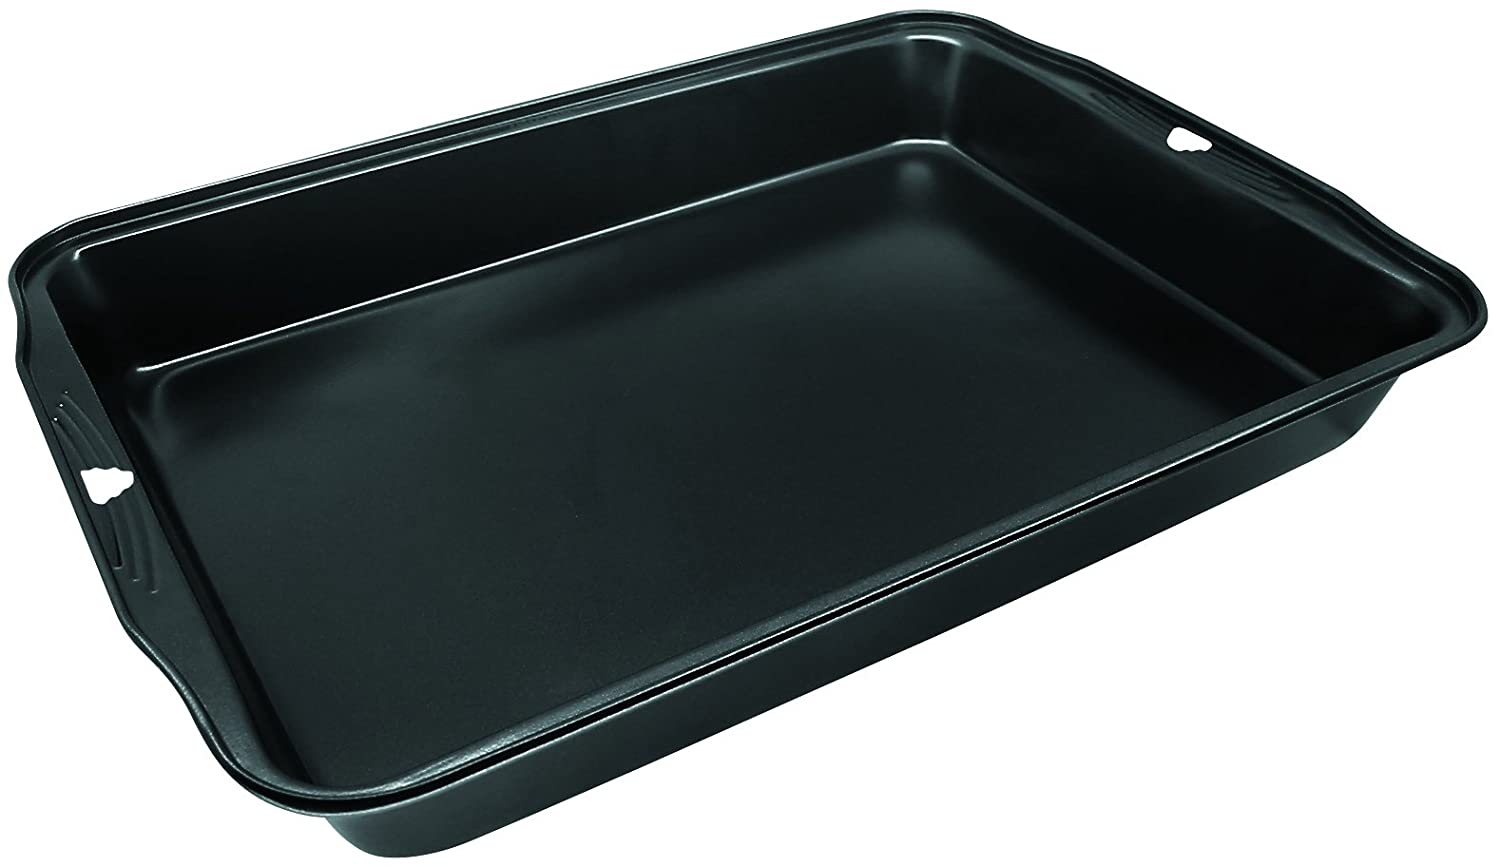 Fackelmann Baking Tray Non-Stick Black 41 x 30 x 6 cm 42556